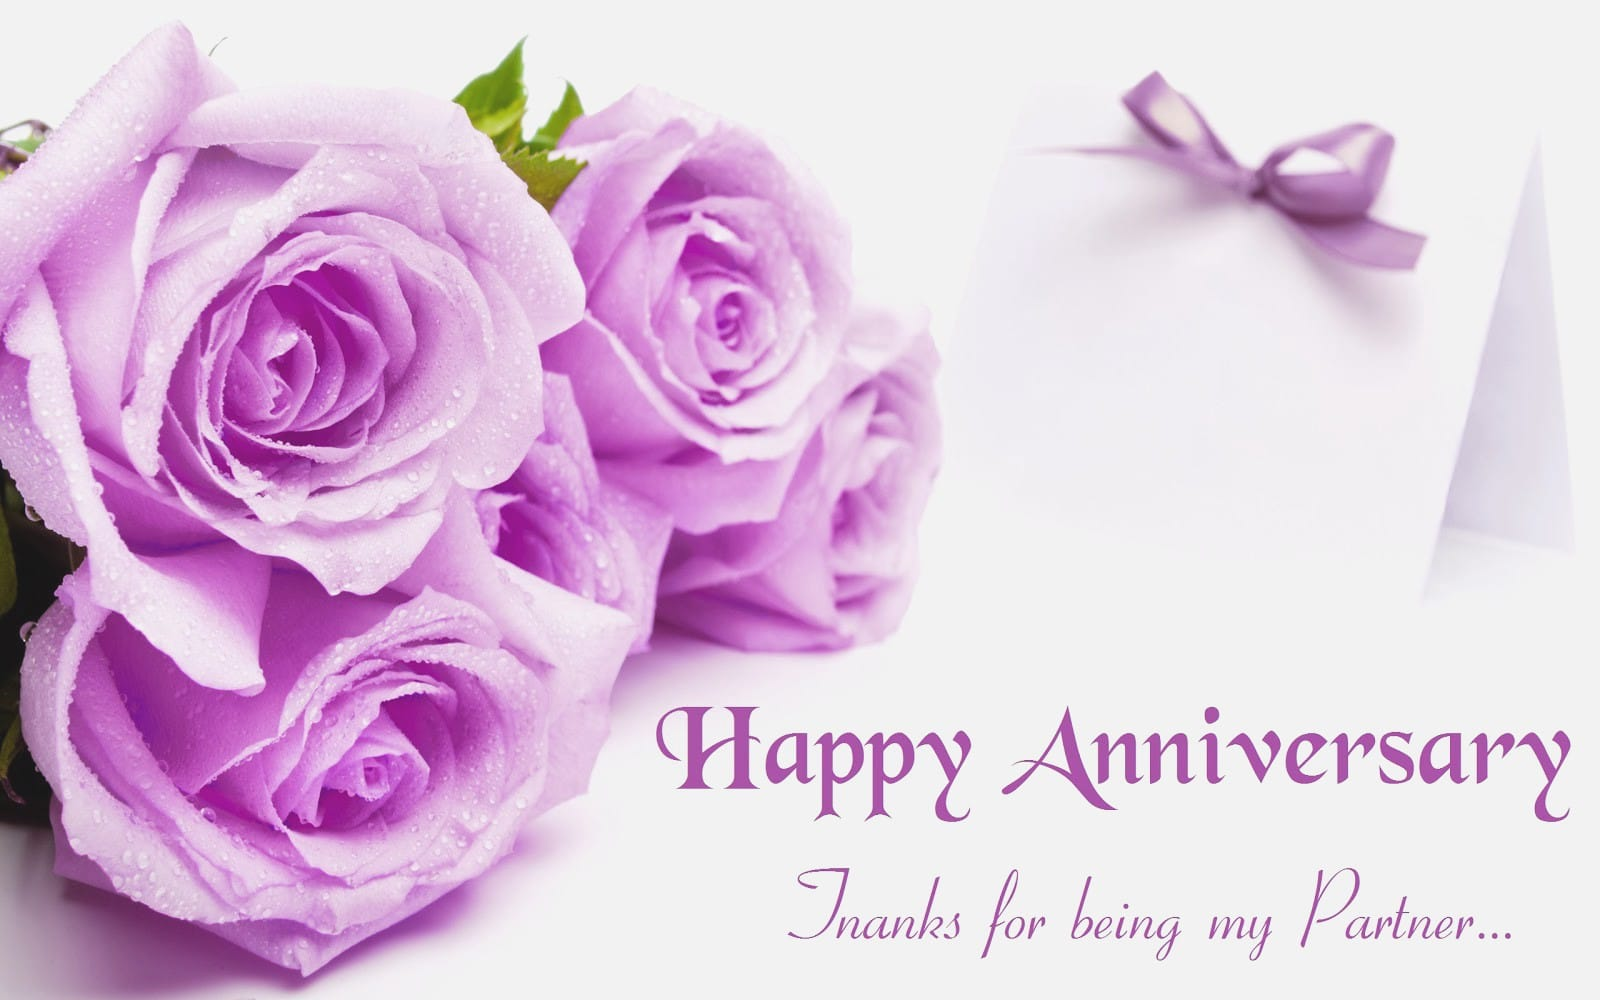 Marriage Anniversary Status